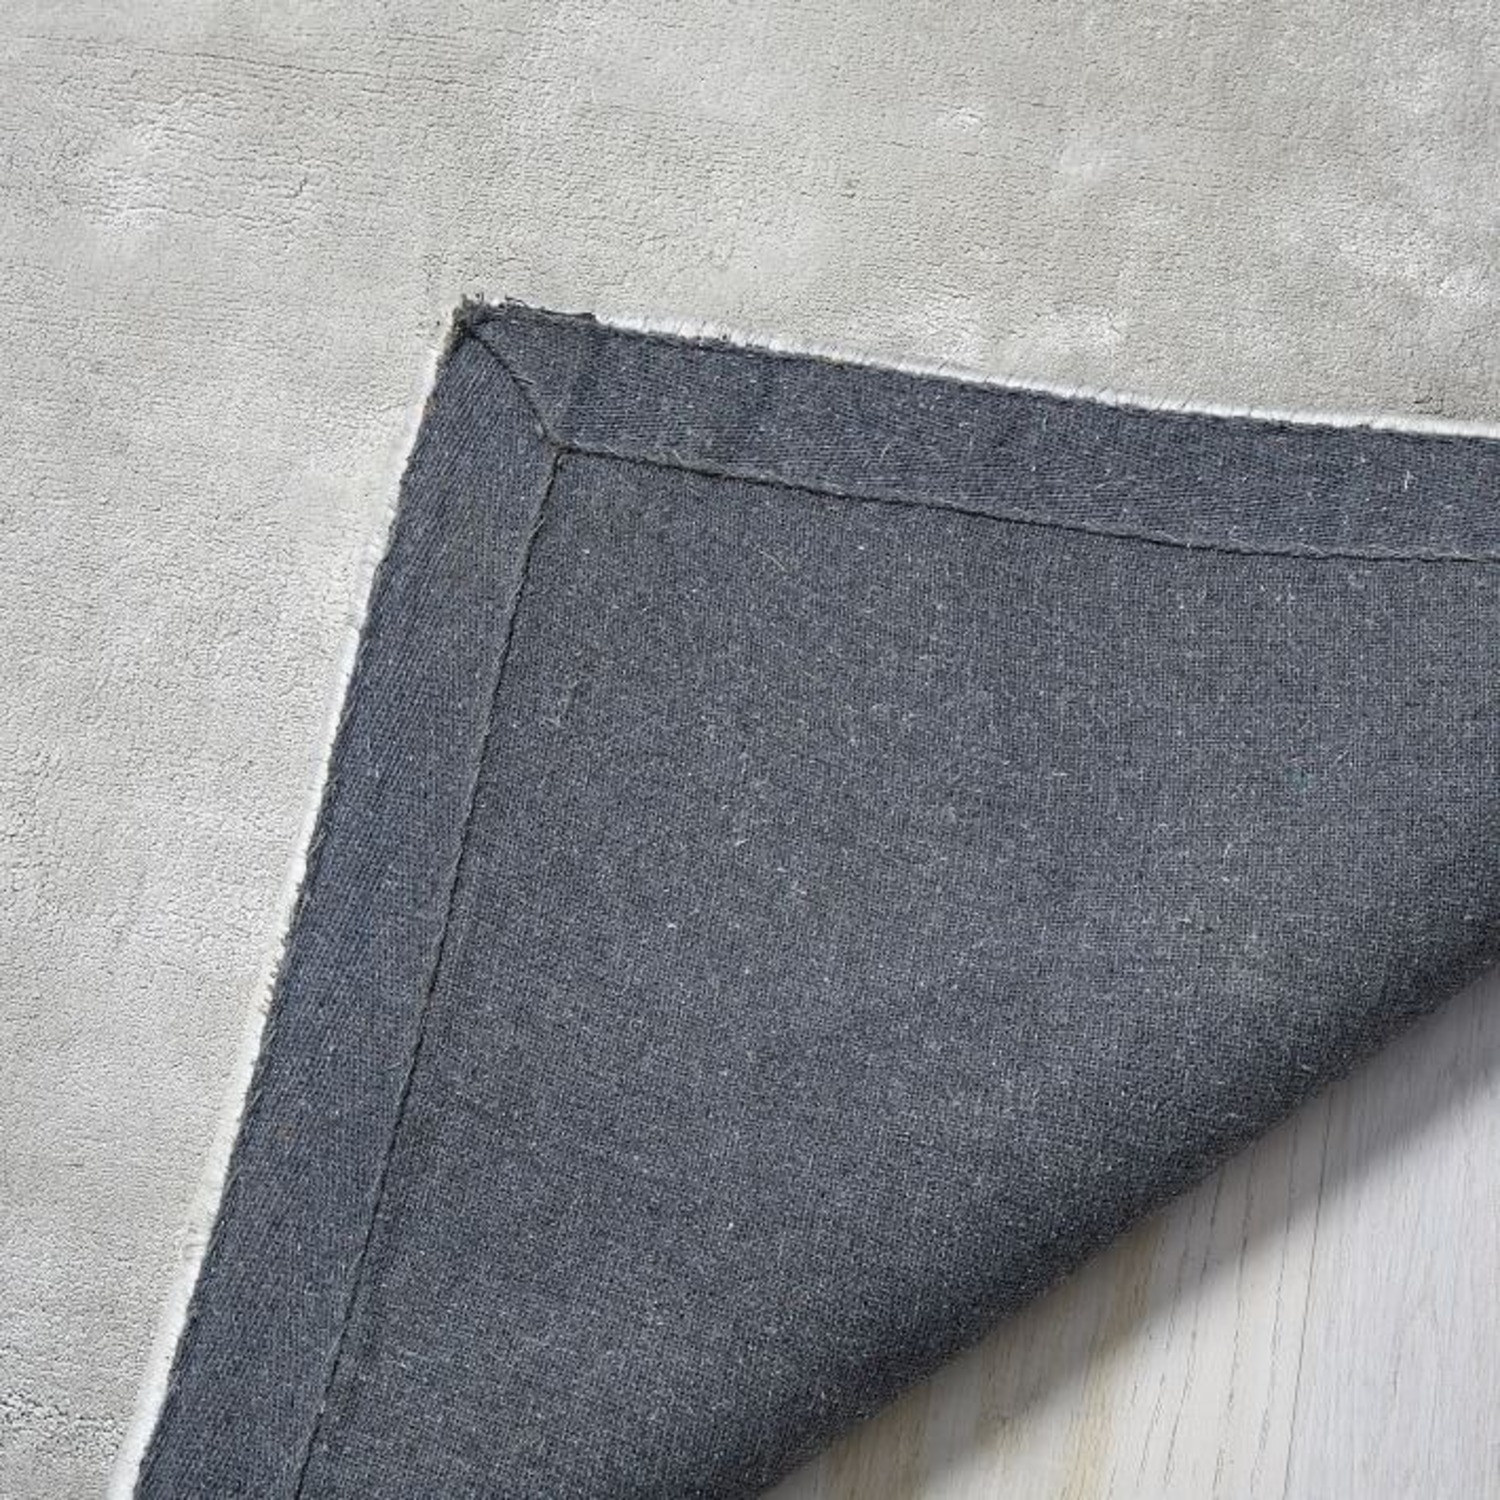 West Elm Lucent Rug, Frost Gray, 5'x8' - image-2